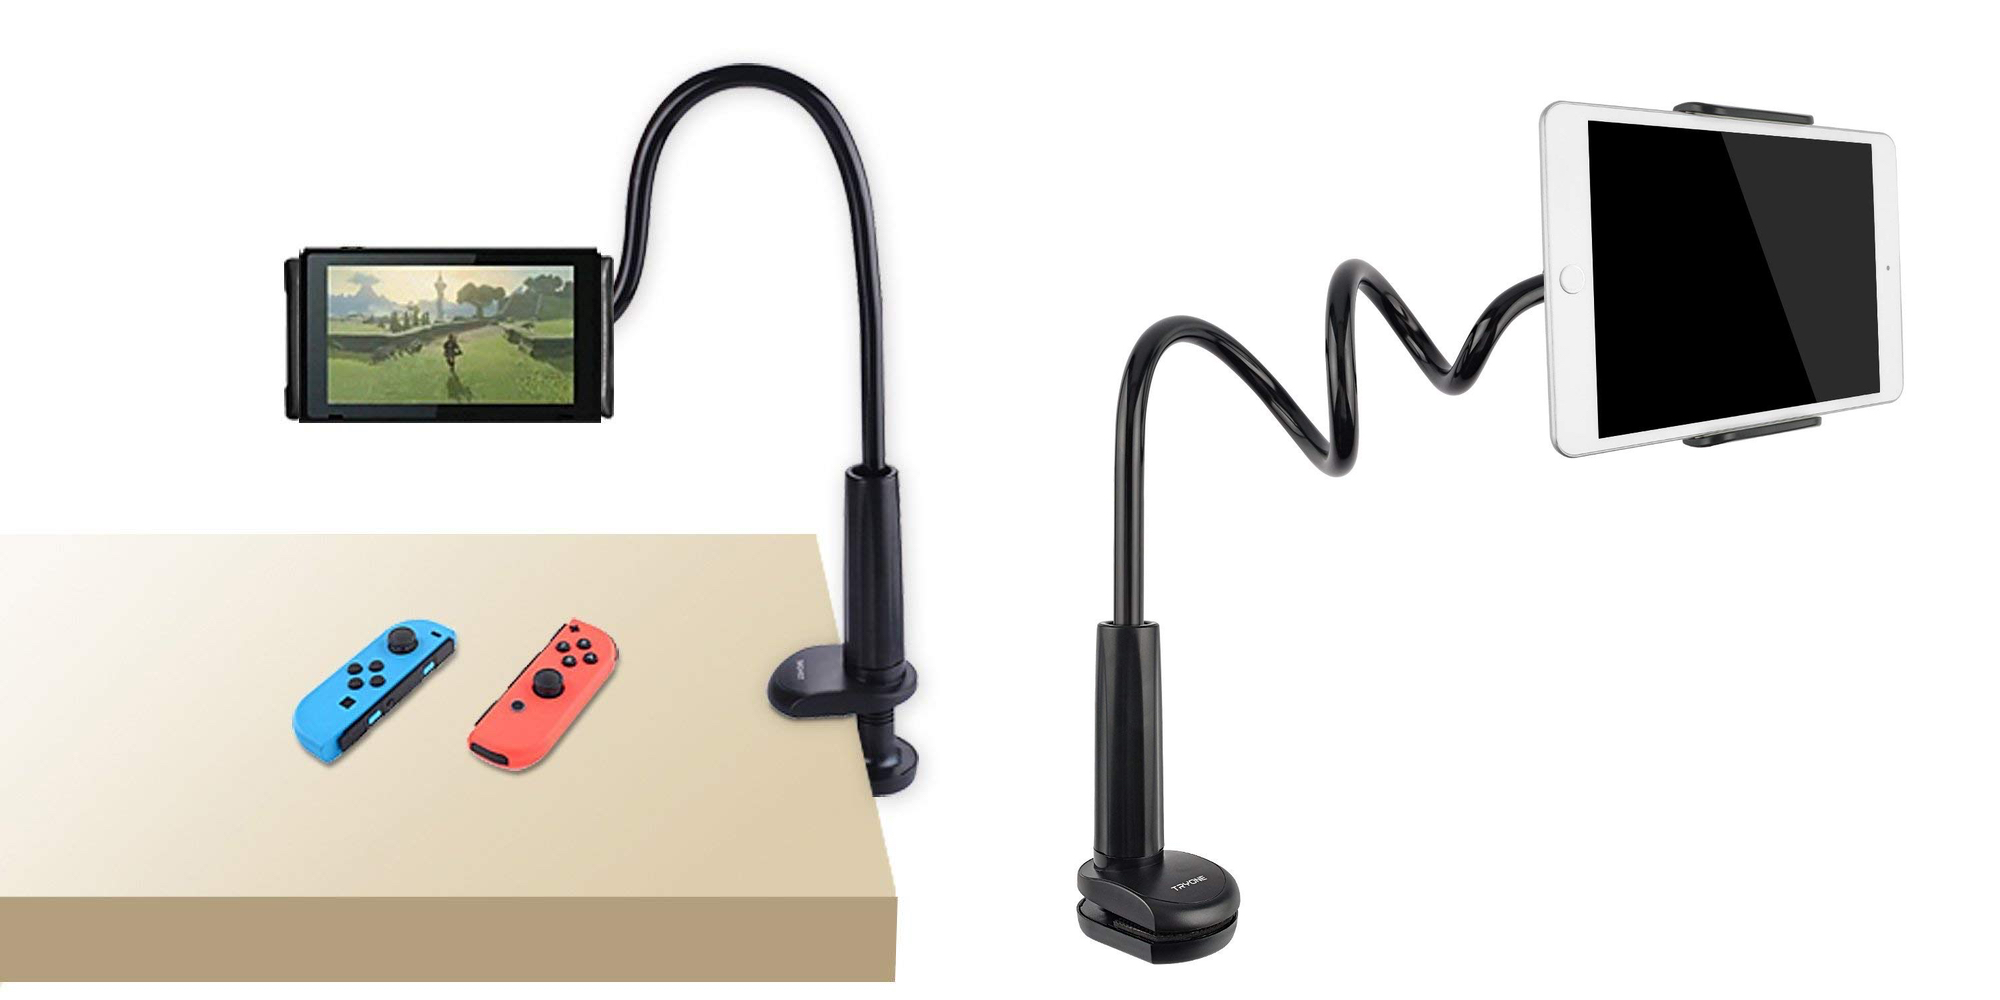 This adjustable gooseneck stand is the perfect iPad or Switch accessory at $14 (30% off)